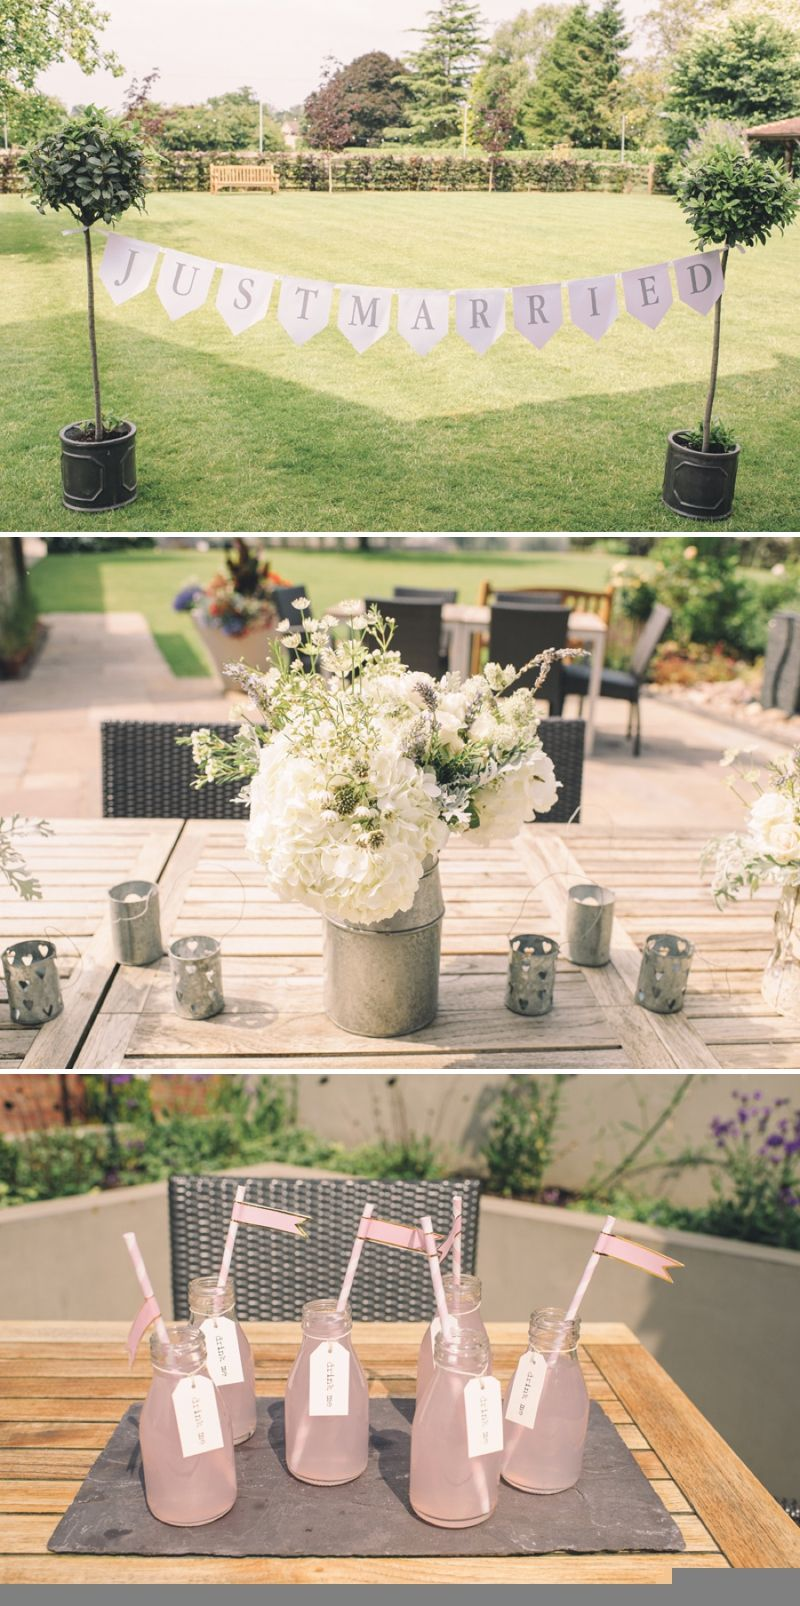 The Wedding Of My Dreams rustic and vintage wedding Wedding Dresses, Wedding  Ideas, Wedding Decorations, Wedding Rings, Wedding Hairstyles, Wedding  Invitati… in 2020